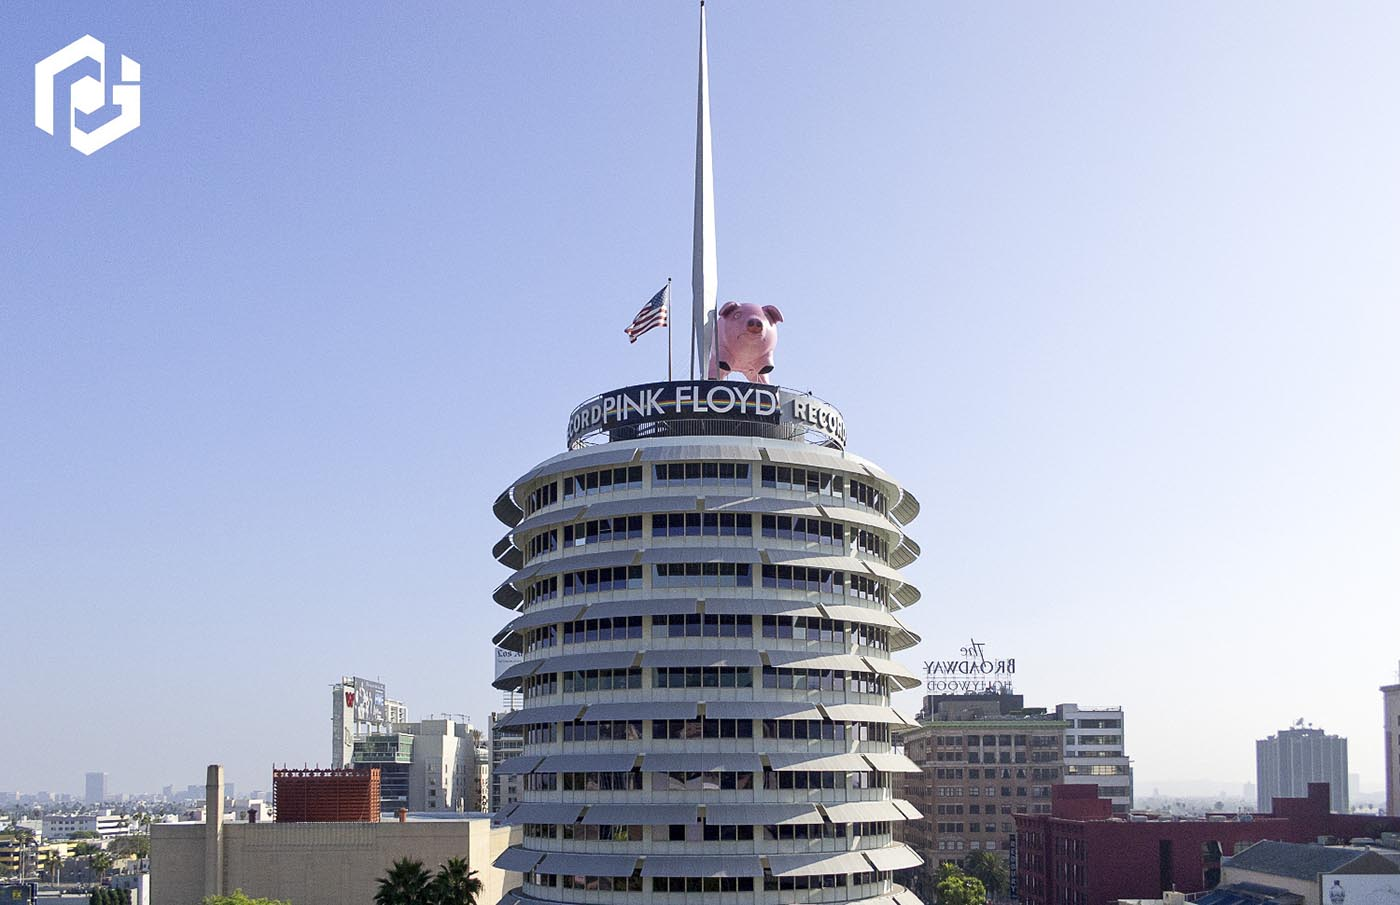 inflatable-animals-pig-on-top-of-capitol-records